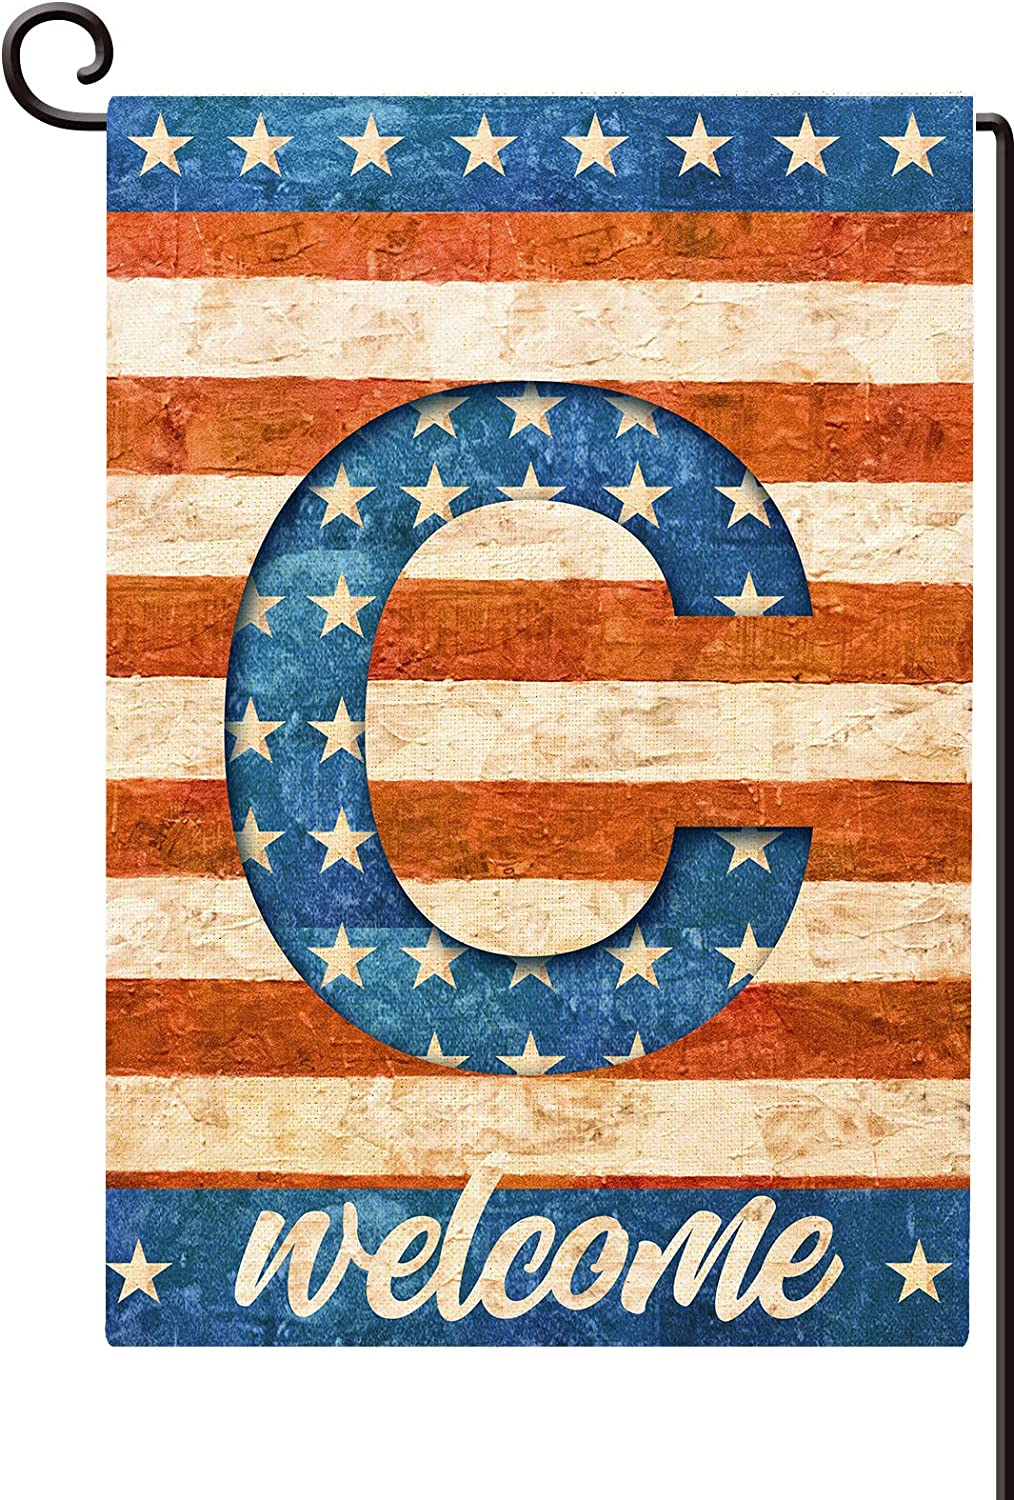 Agantree Art American Patriotic Monogram Letter C Small Garden Flag Waterproof Double Sided Yard Outdoor Decorative 12 x 18 Inch